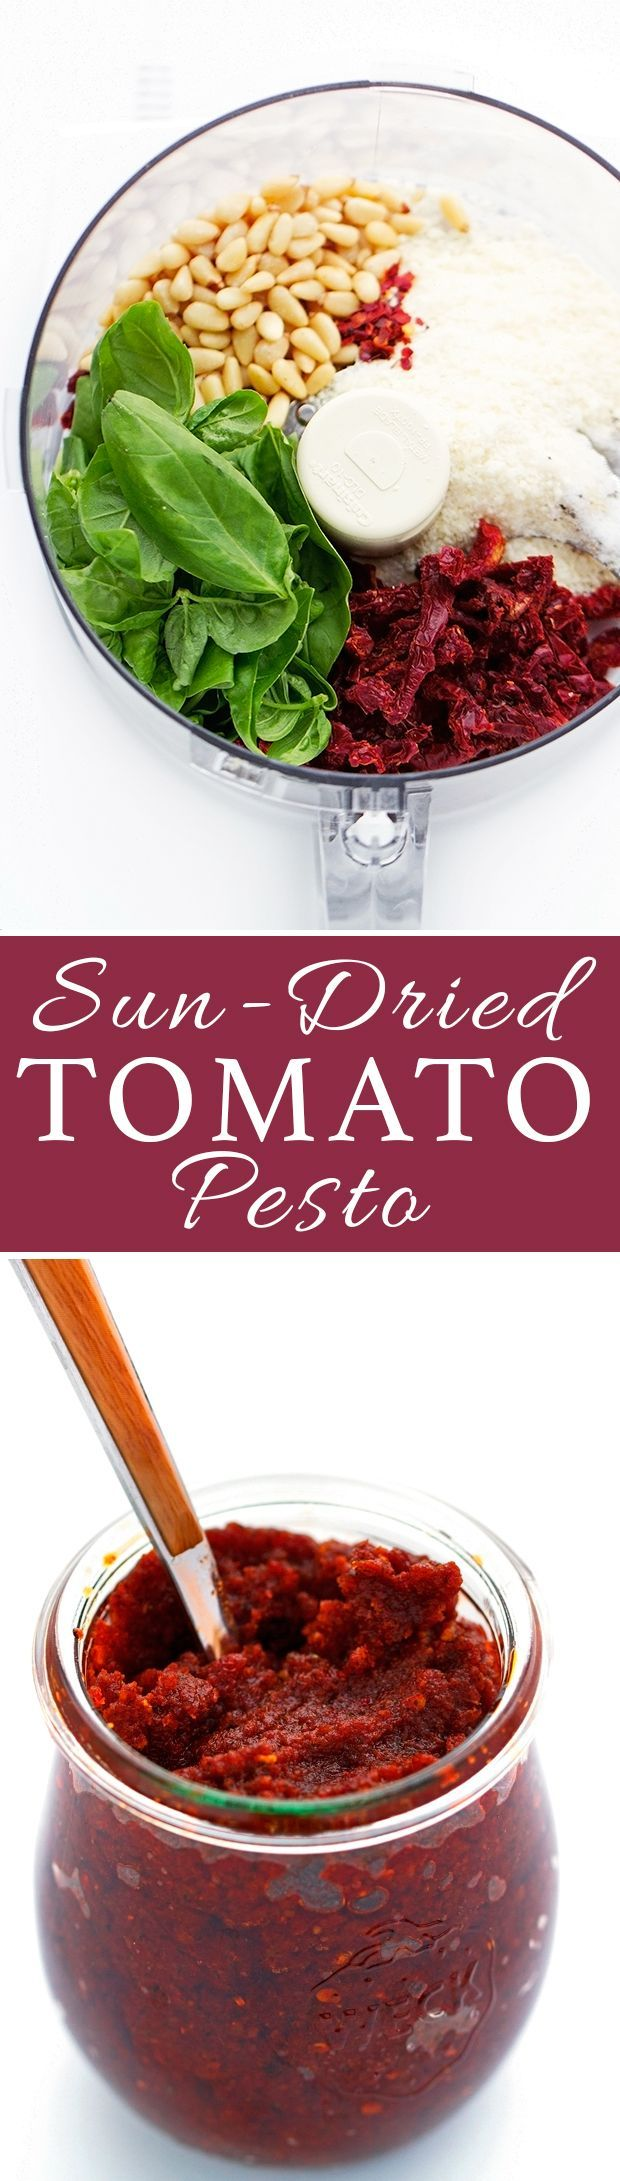 Homemade Sun-dried tomato pesto - so much more flavorful when you make it at home and cheaper too! #tomatopesto #tomatobasilpesto #pesto | Littlespicejar.com